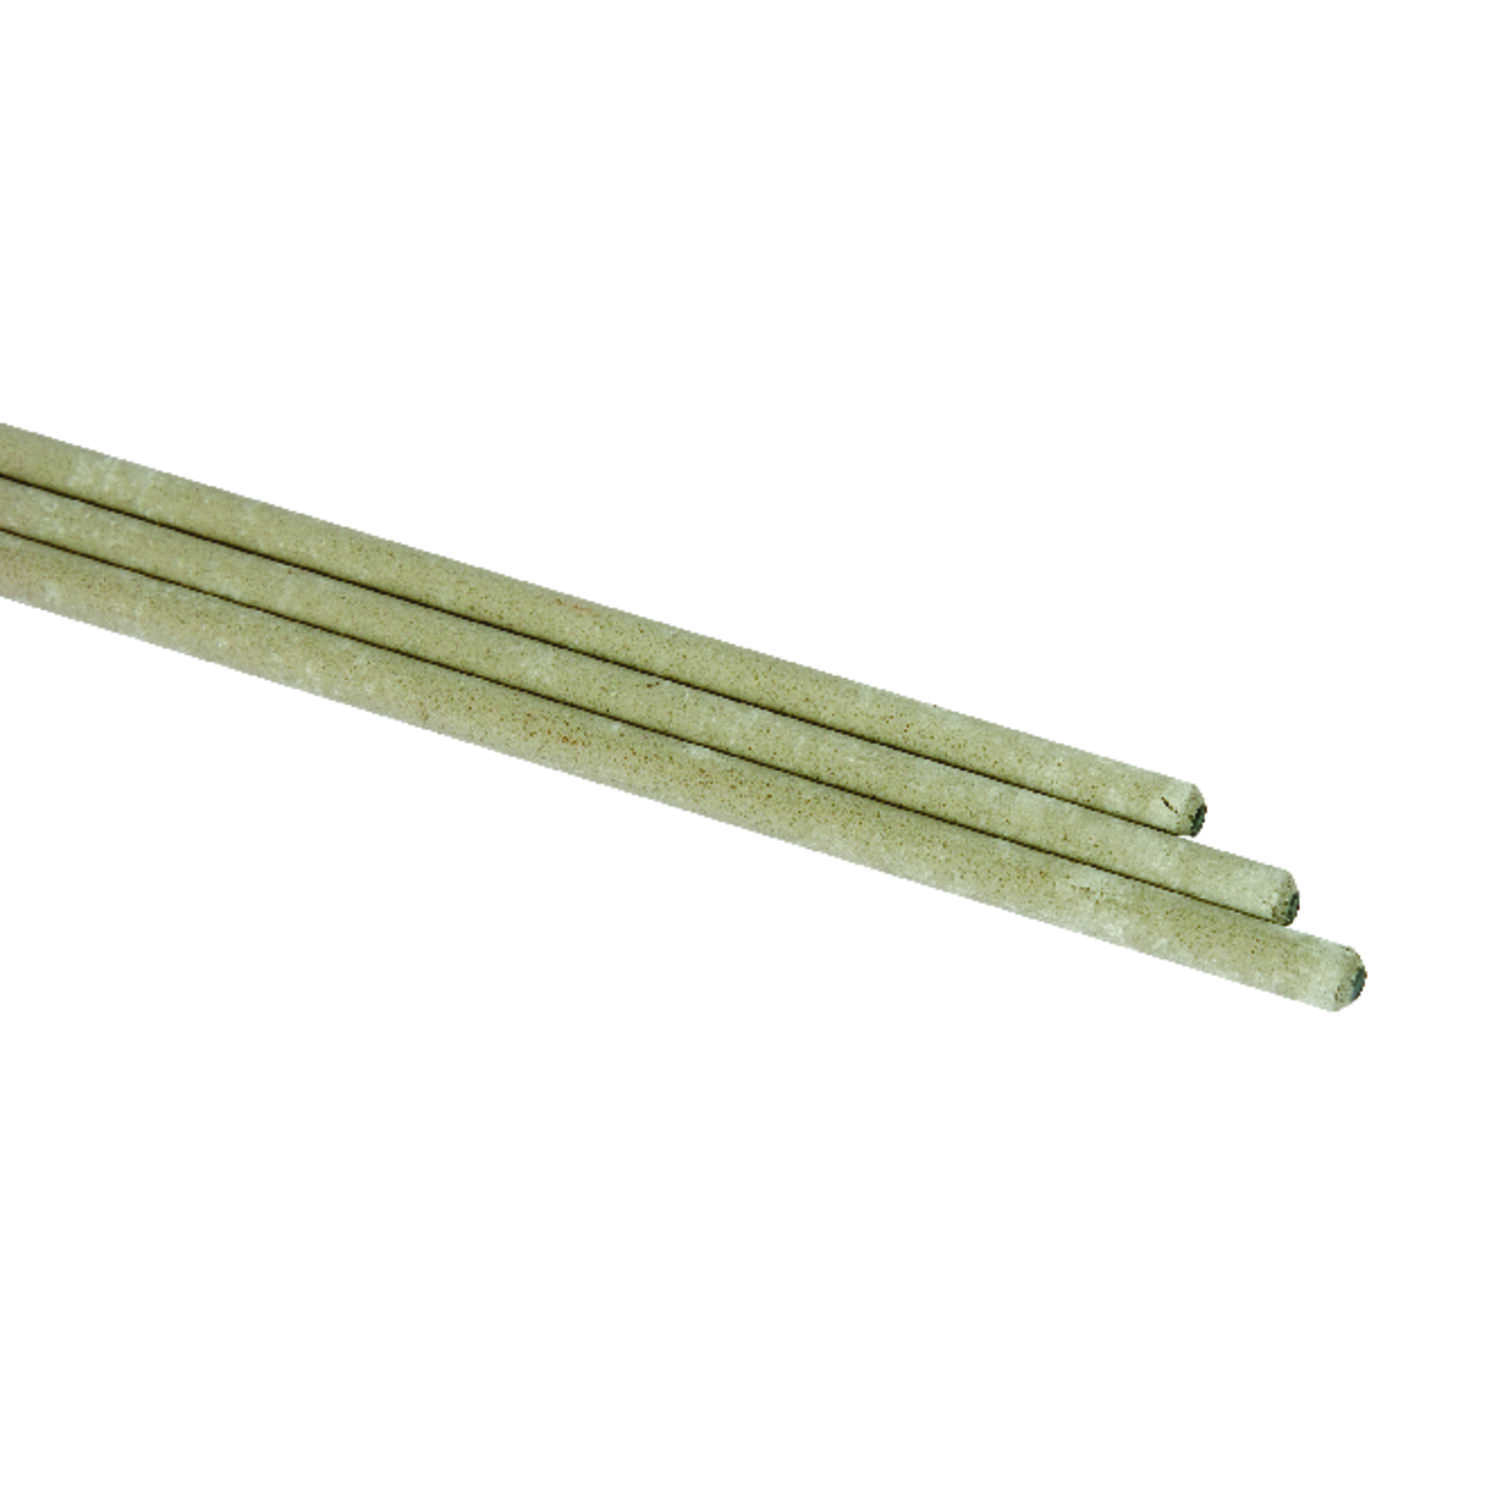 Forney  3/32 in. Dia. x 14.6 in. L E7018  Mild Steel  Welding Rods  5 lb. 1  84000 psi